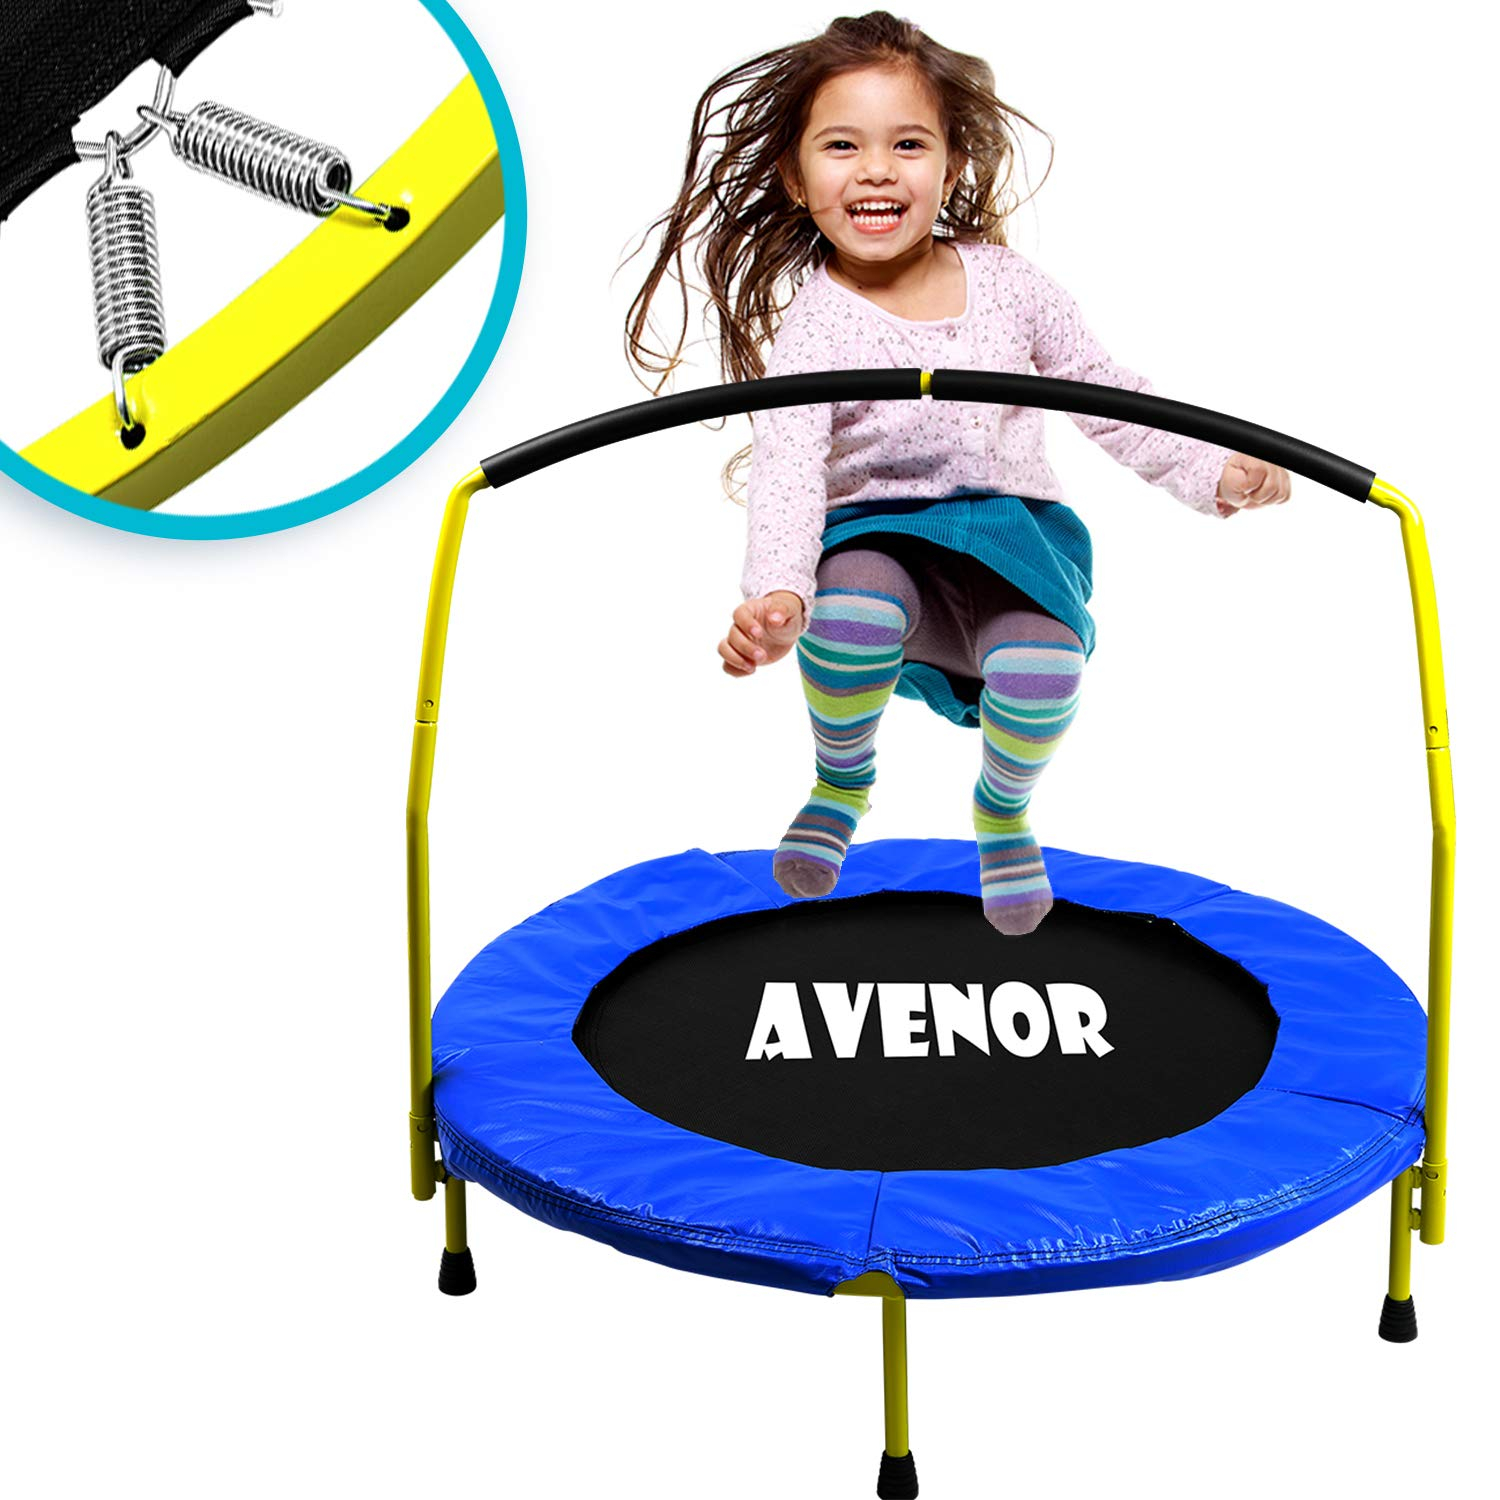 Toddler trampoline with Handle- 36 inches Kids Trampoline